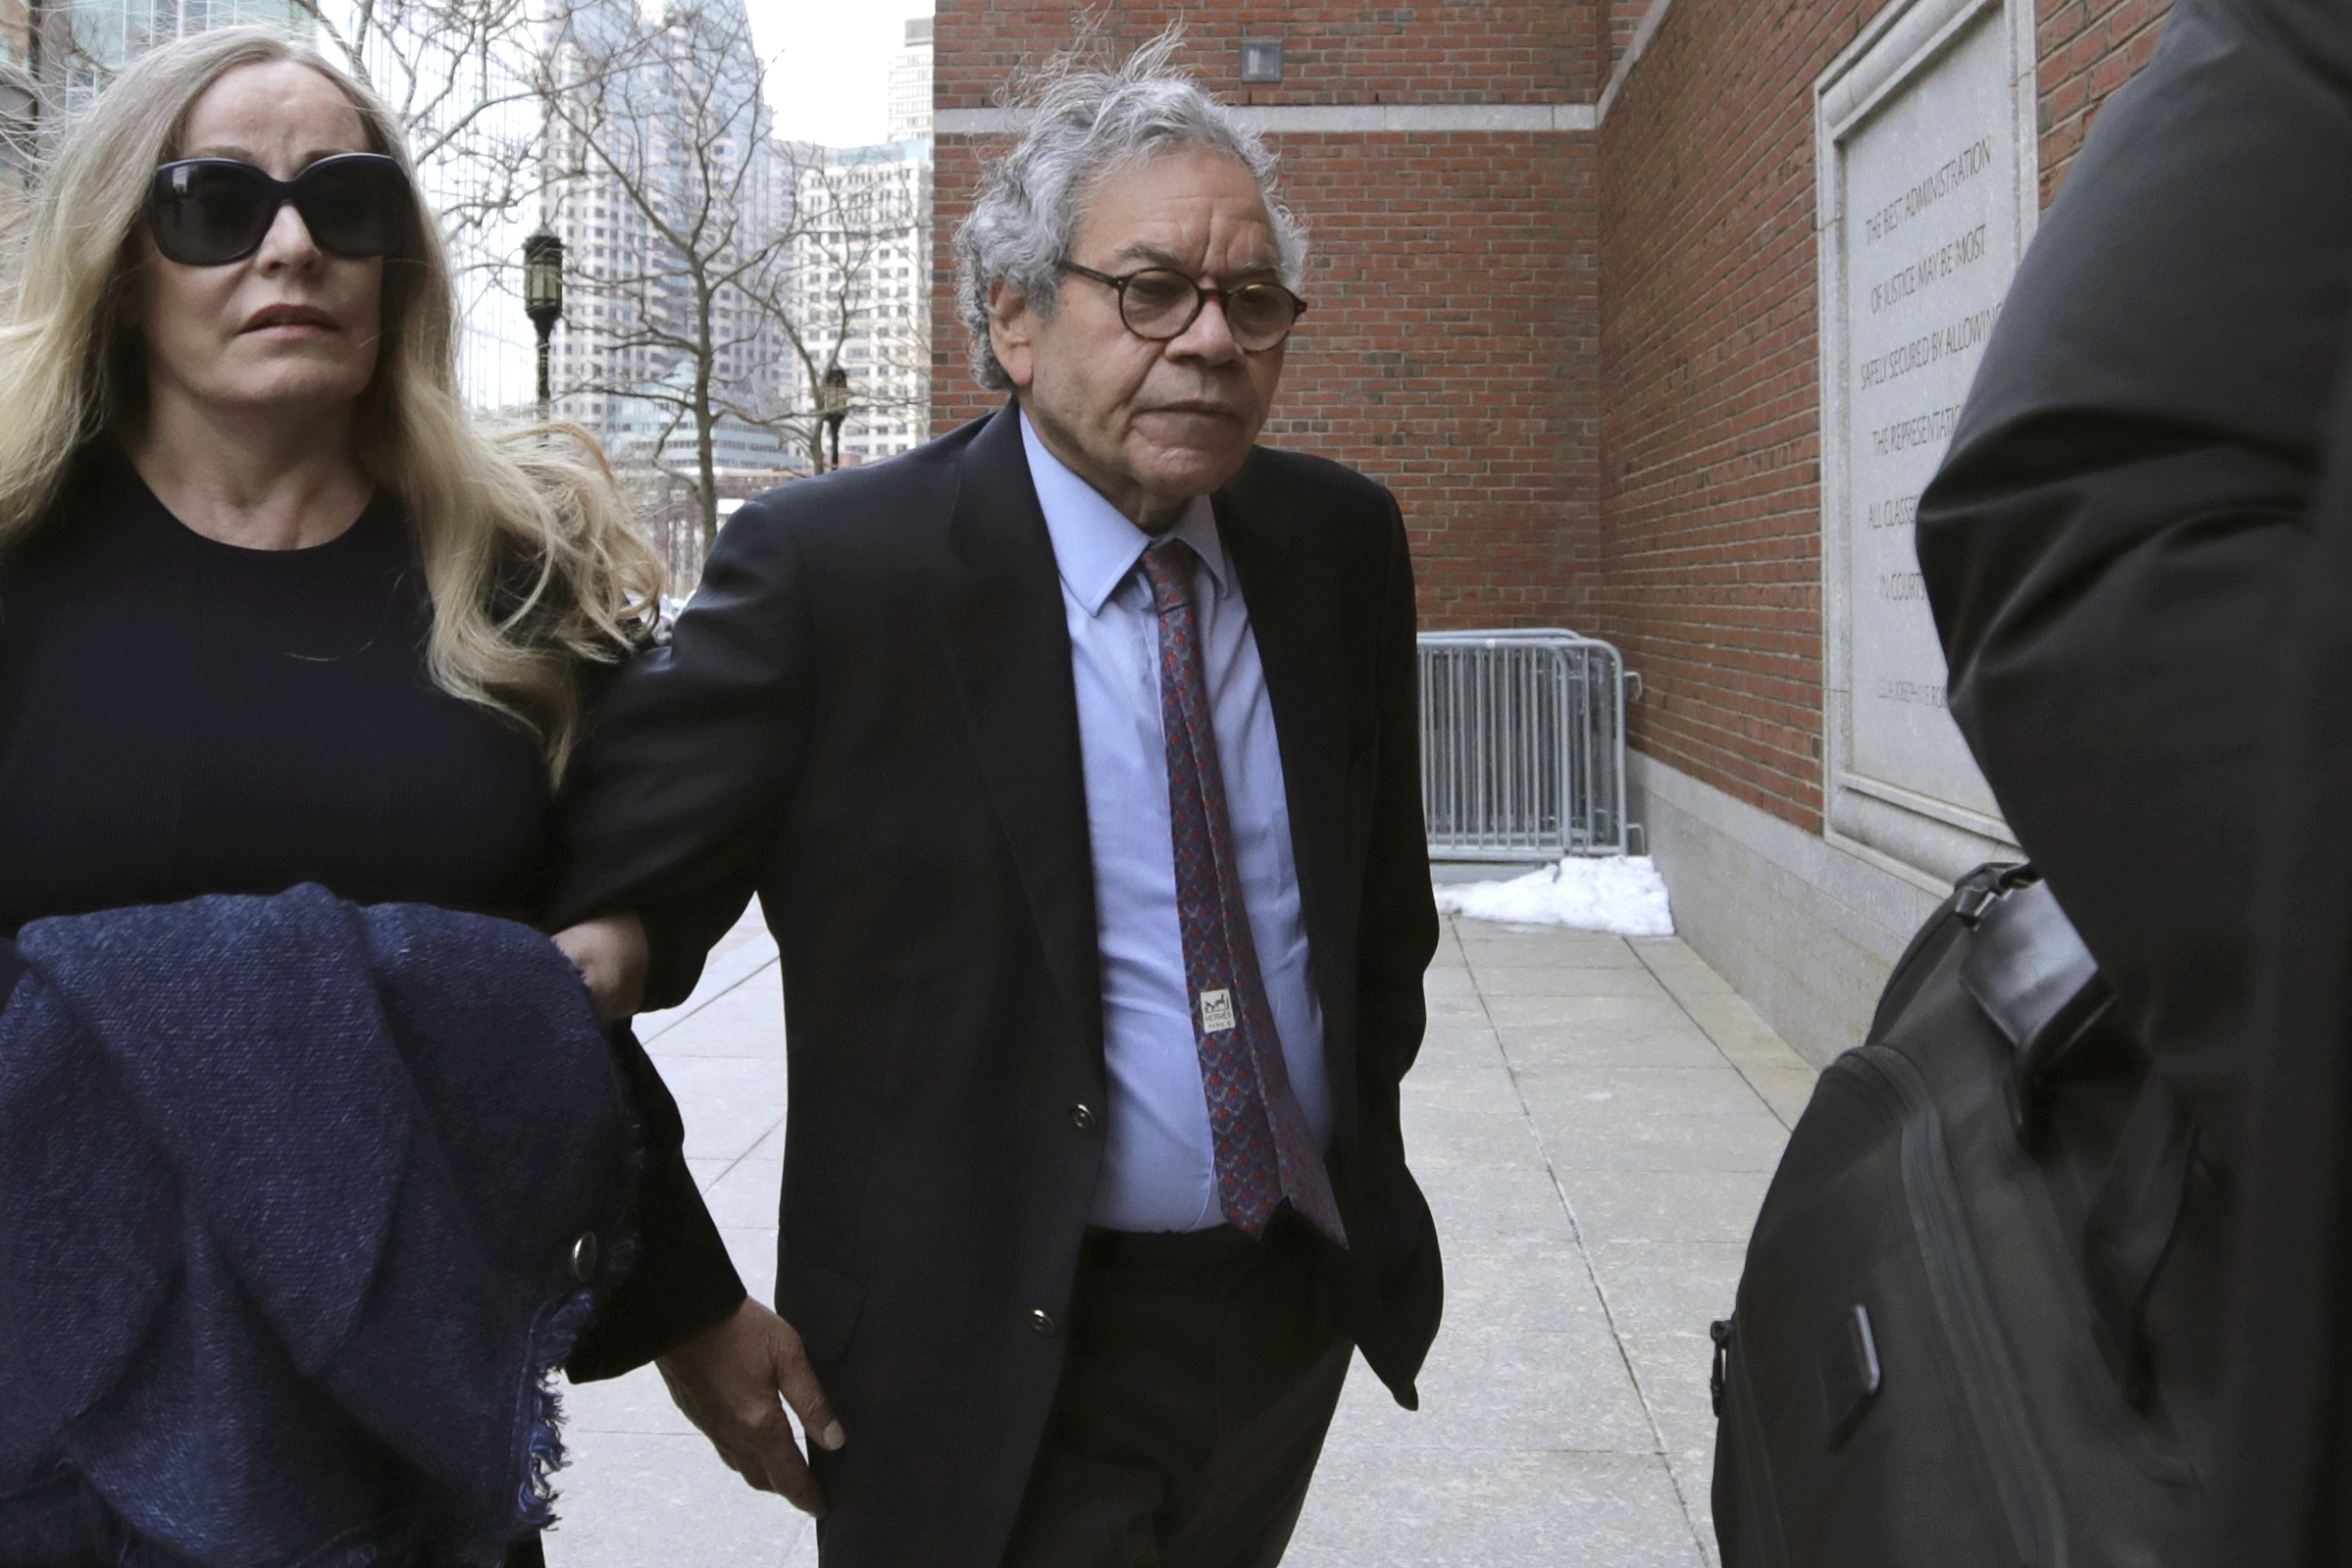 Pharmaceutical Company Founder Gets 5 1/2 Years for Pushing Opioid